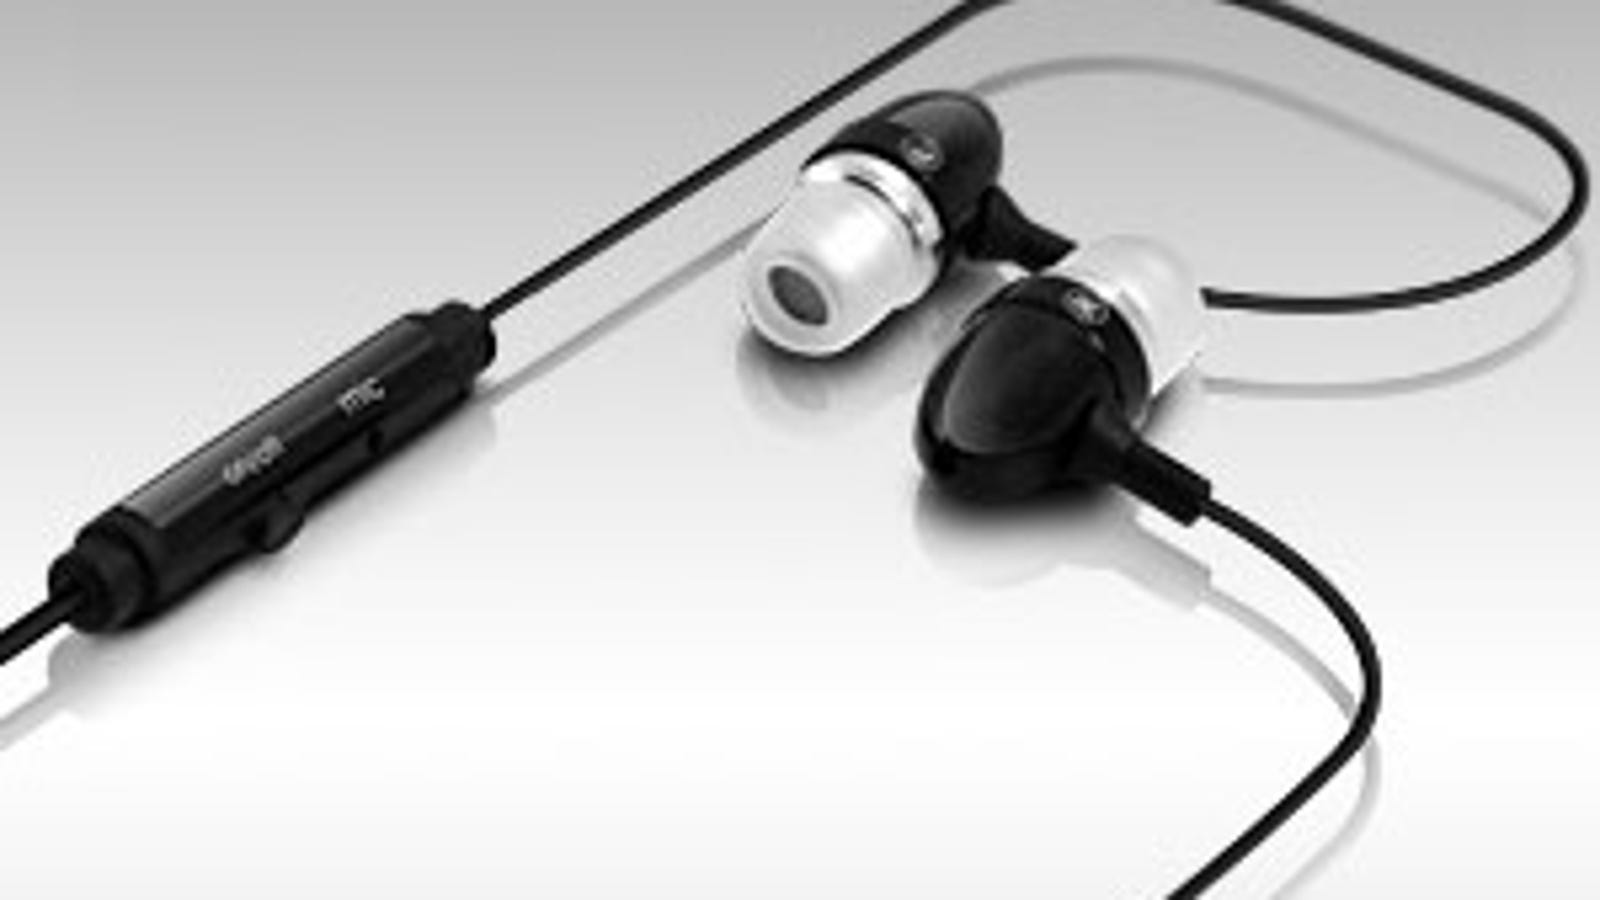 wireless bluetooth headphones refurbished - RadTech ProCable iPhone Headphones Are a Cheap Alternative